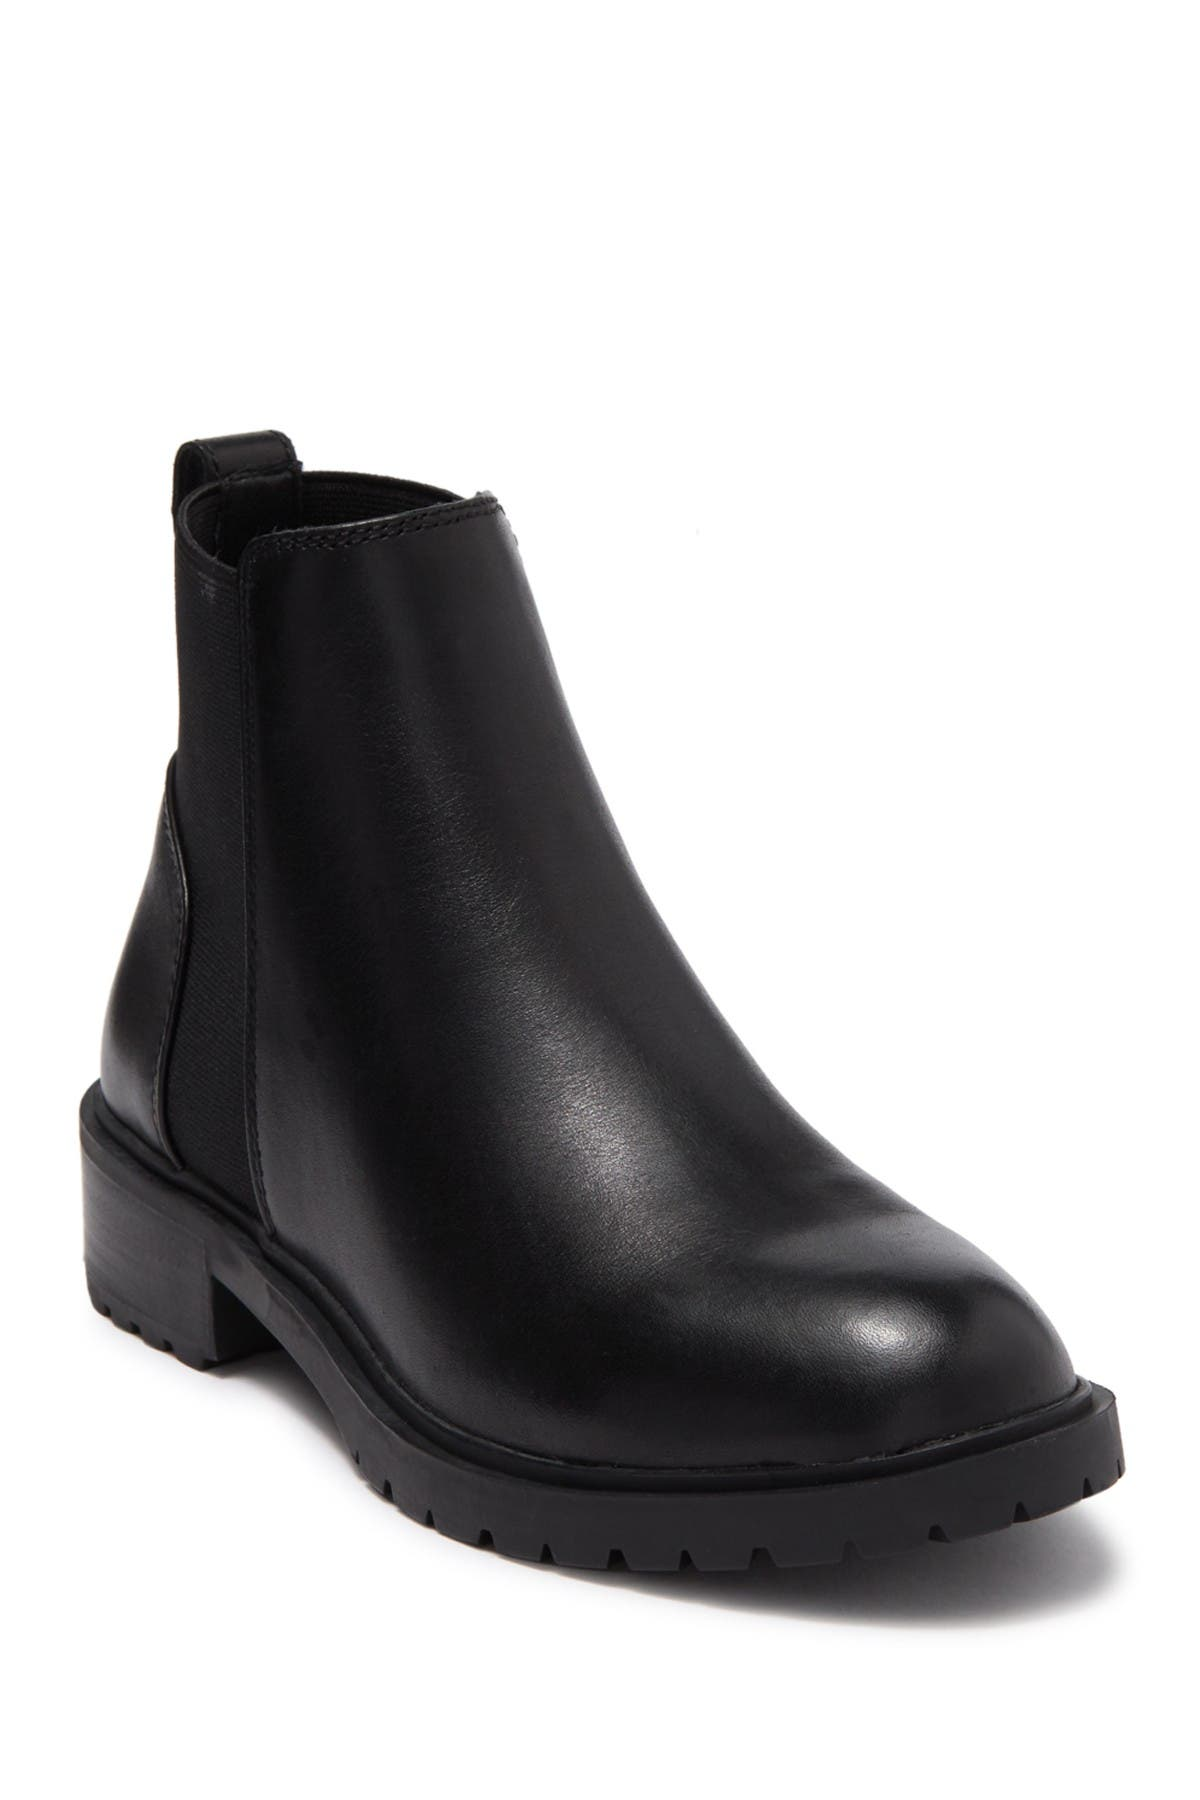 Steve Madden   Buzzing Ankle Boot